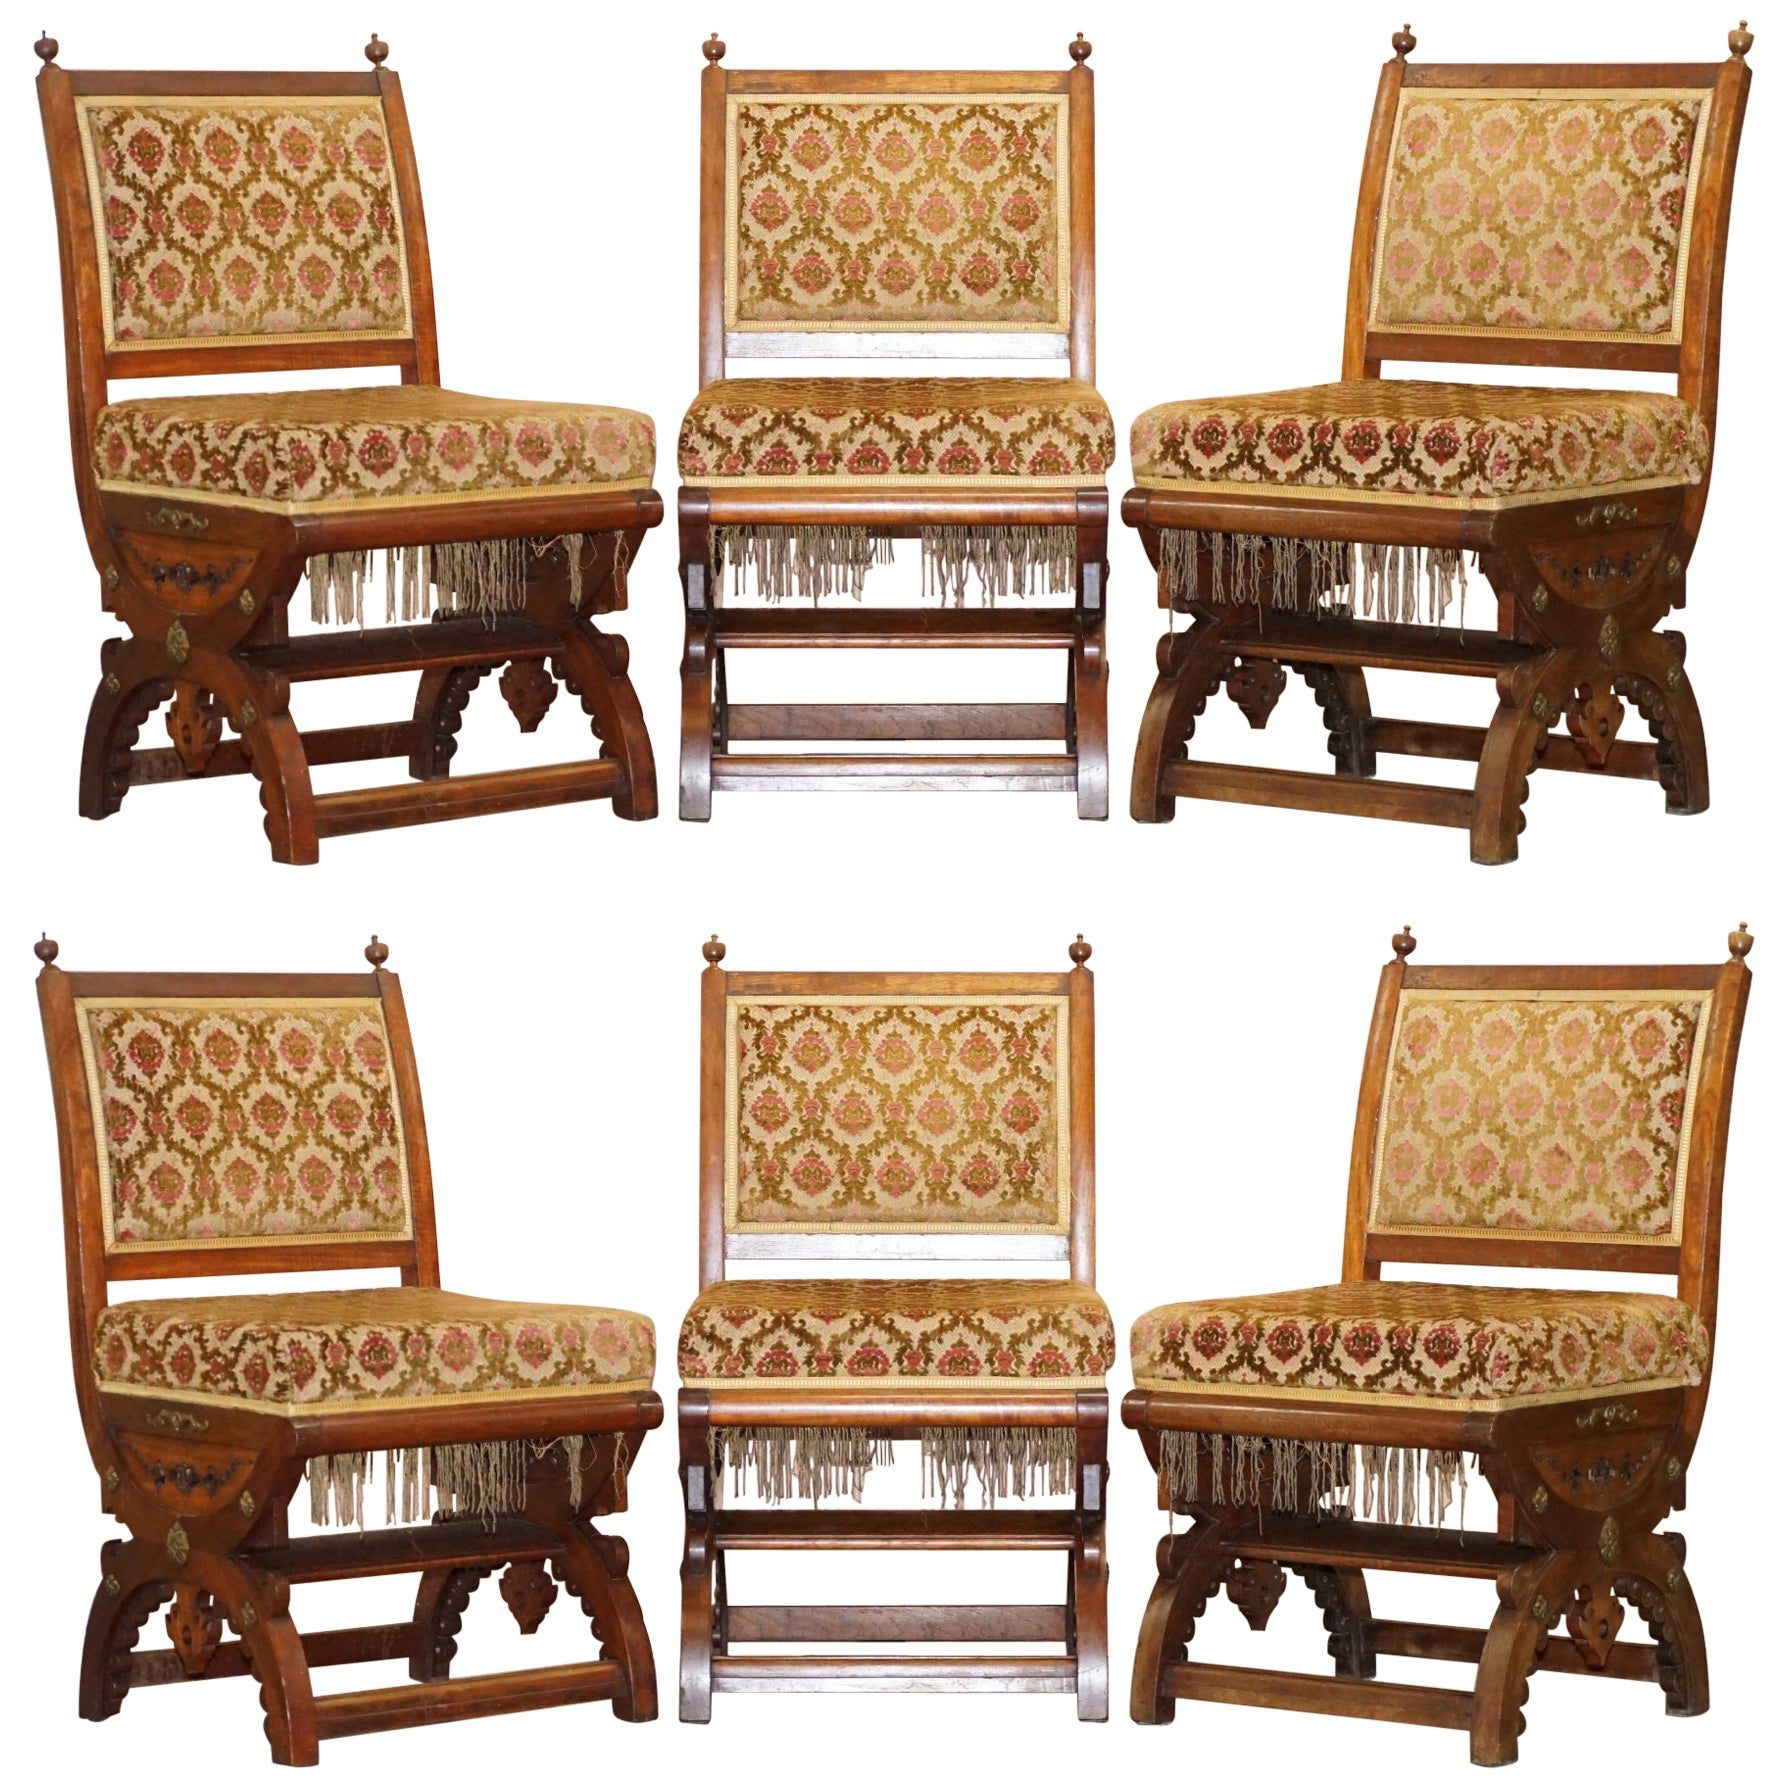 Set of Six Gothic Revival Ornately Carved Walnut Gilt Metal Chairs after Pugin